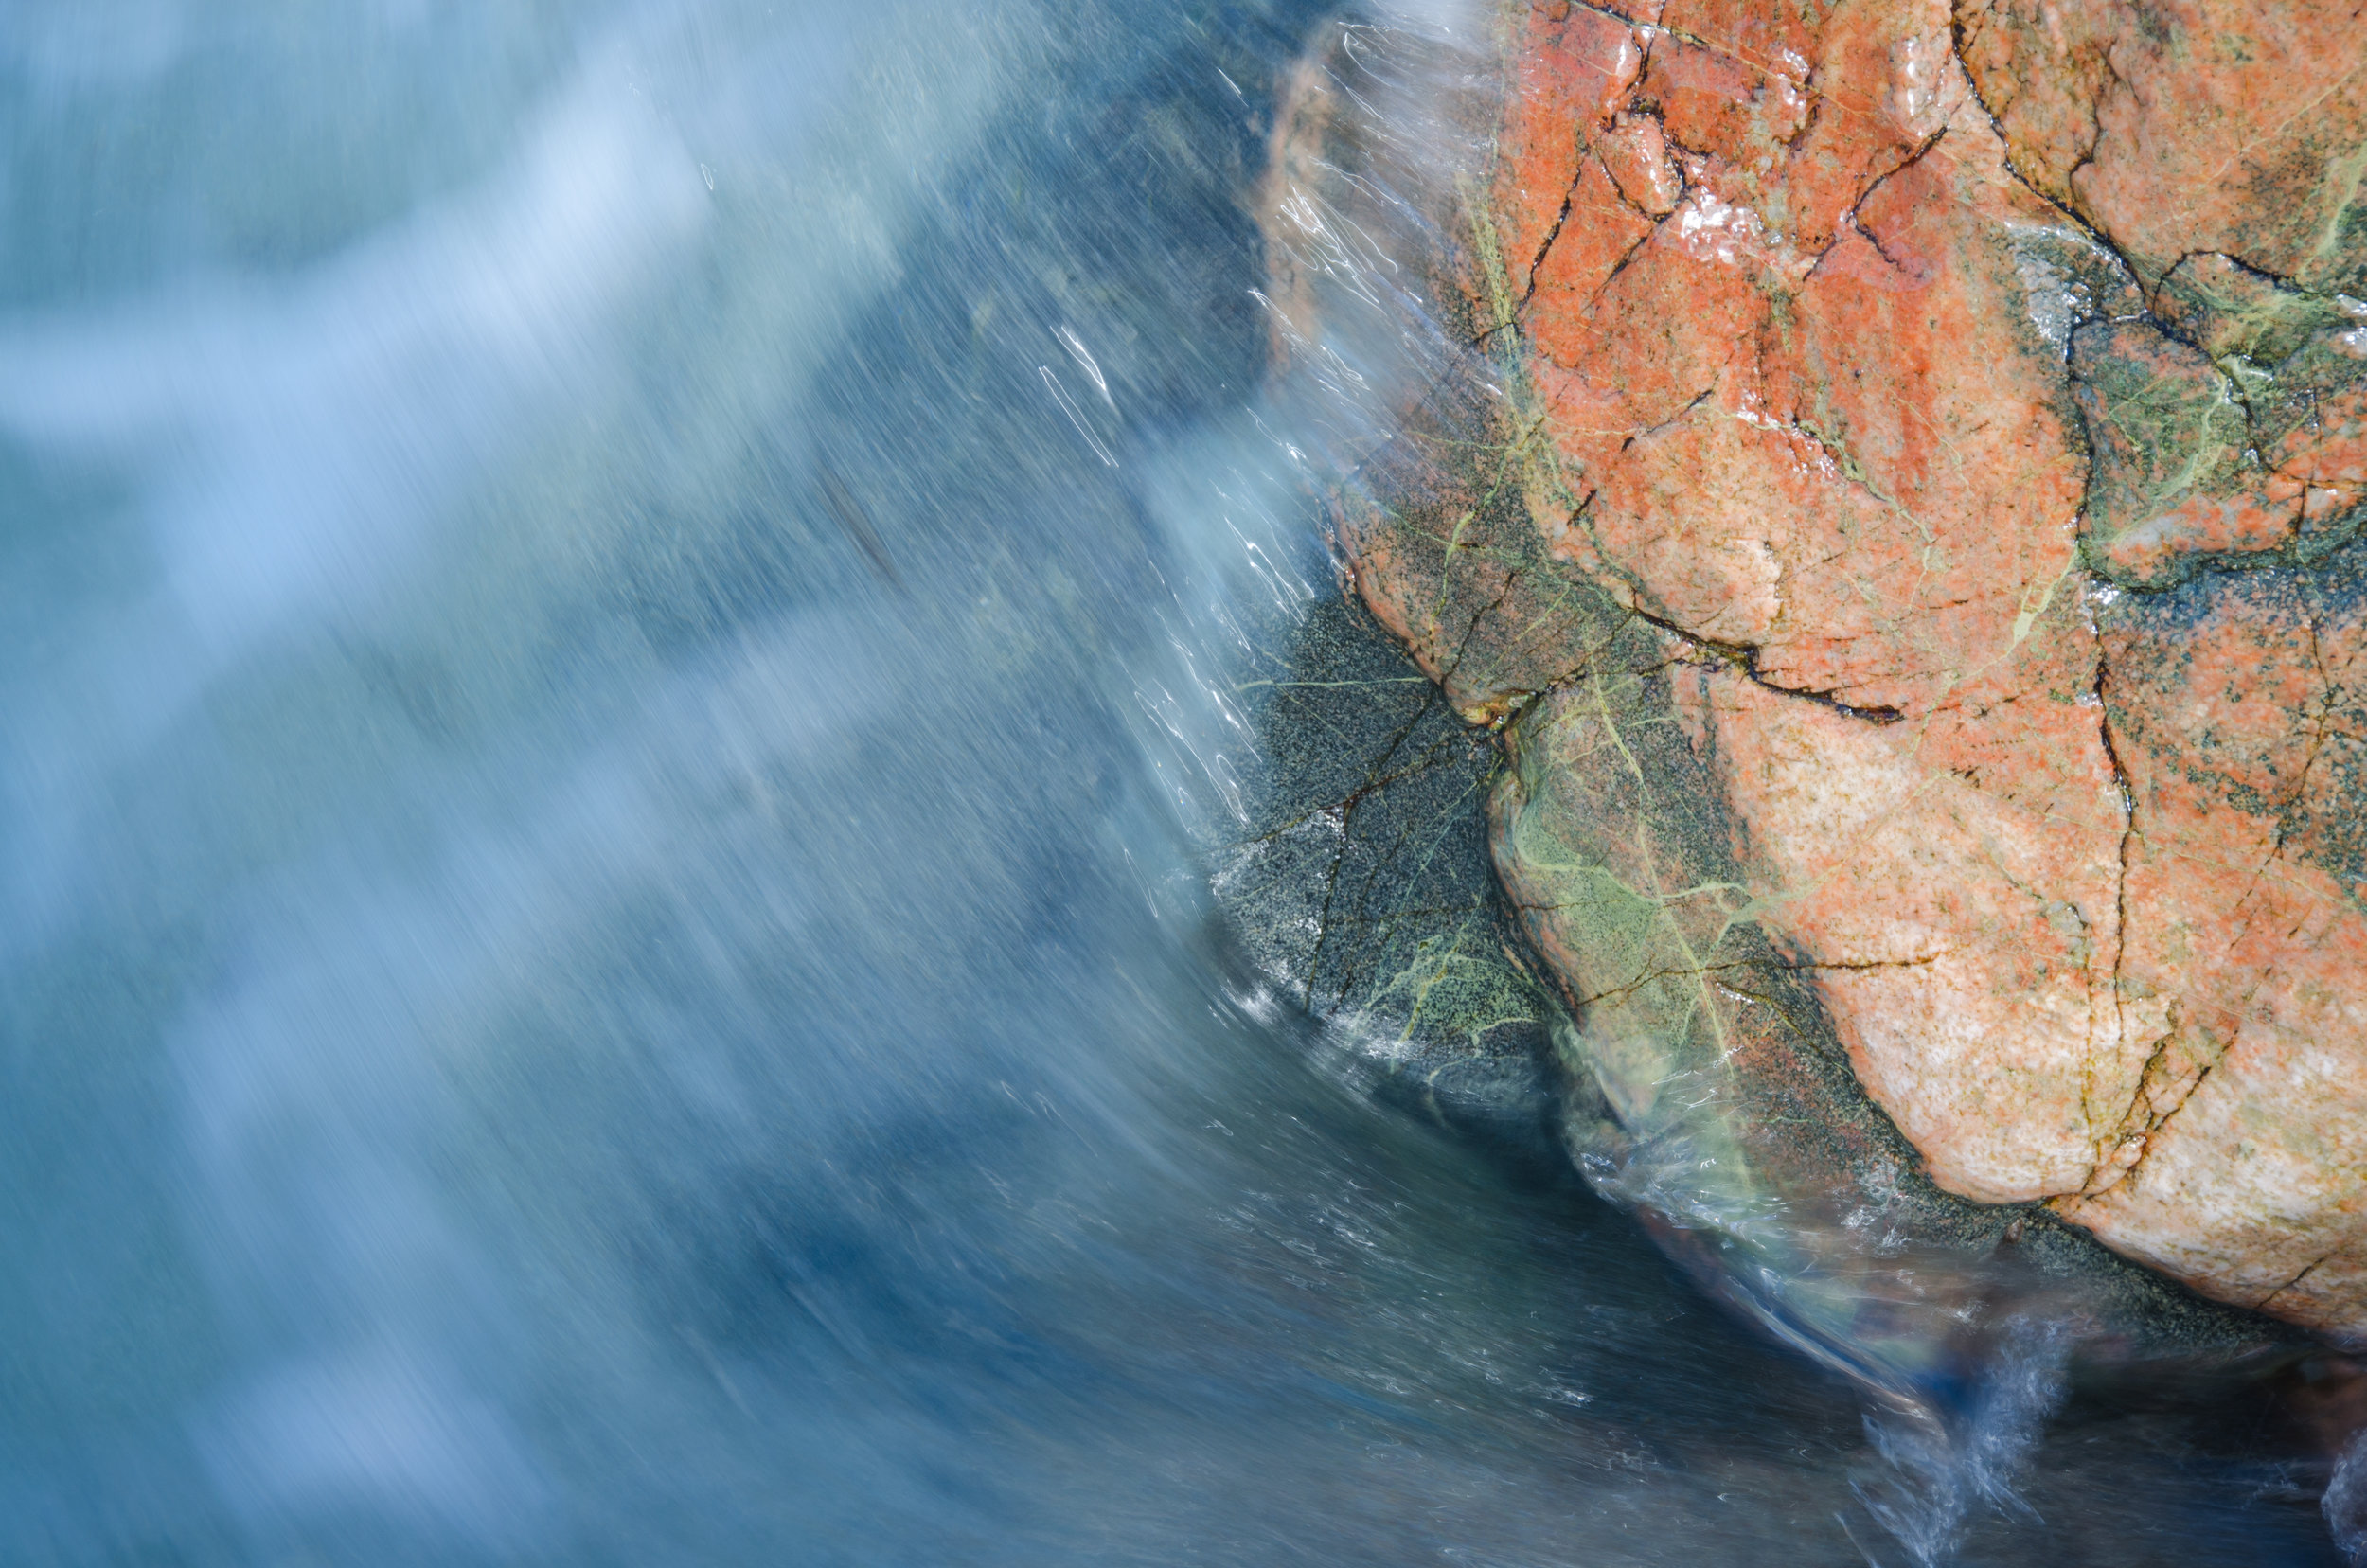 Water rushes over one of the colourful rocks